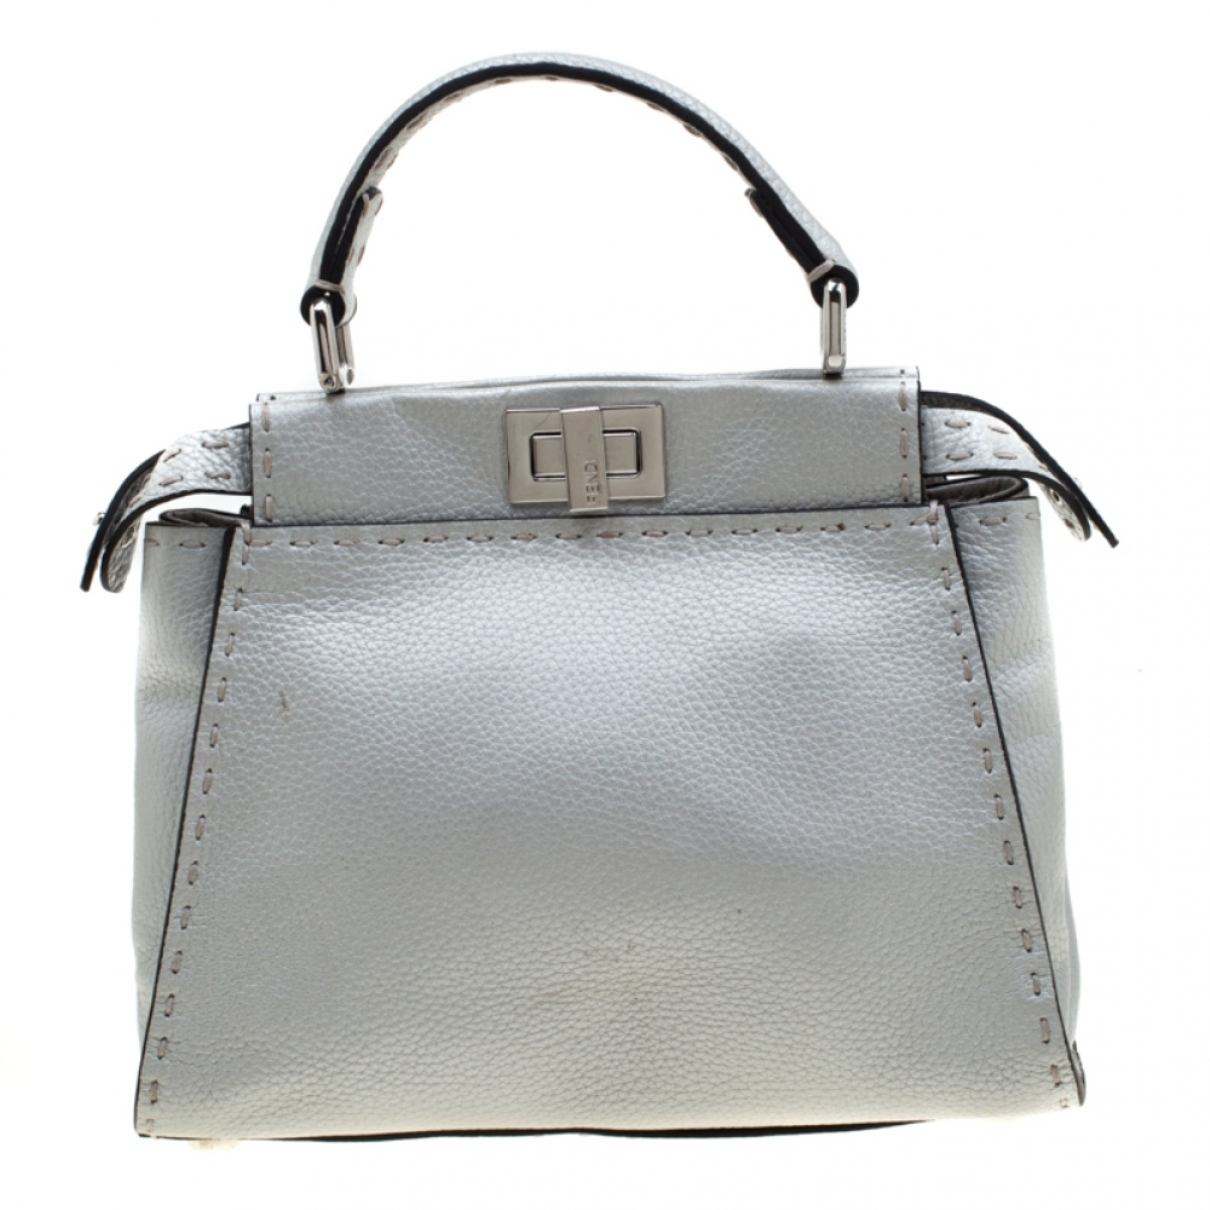 Fendi Peekaboo Silver Leather handbag for Women \N